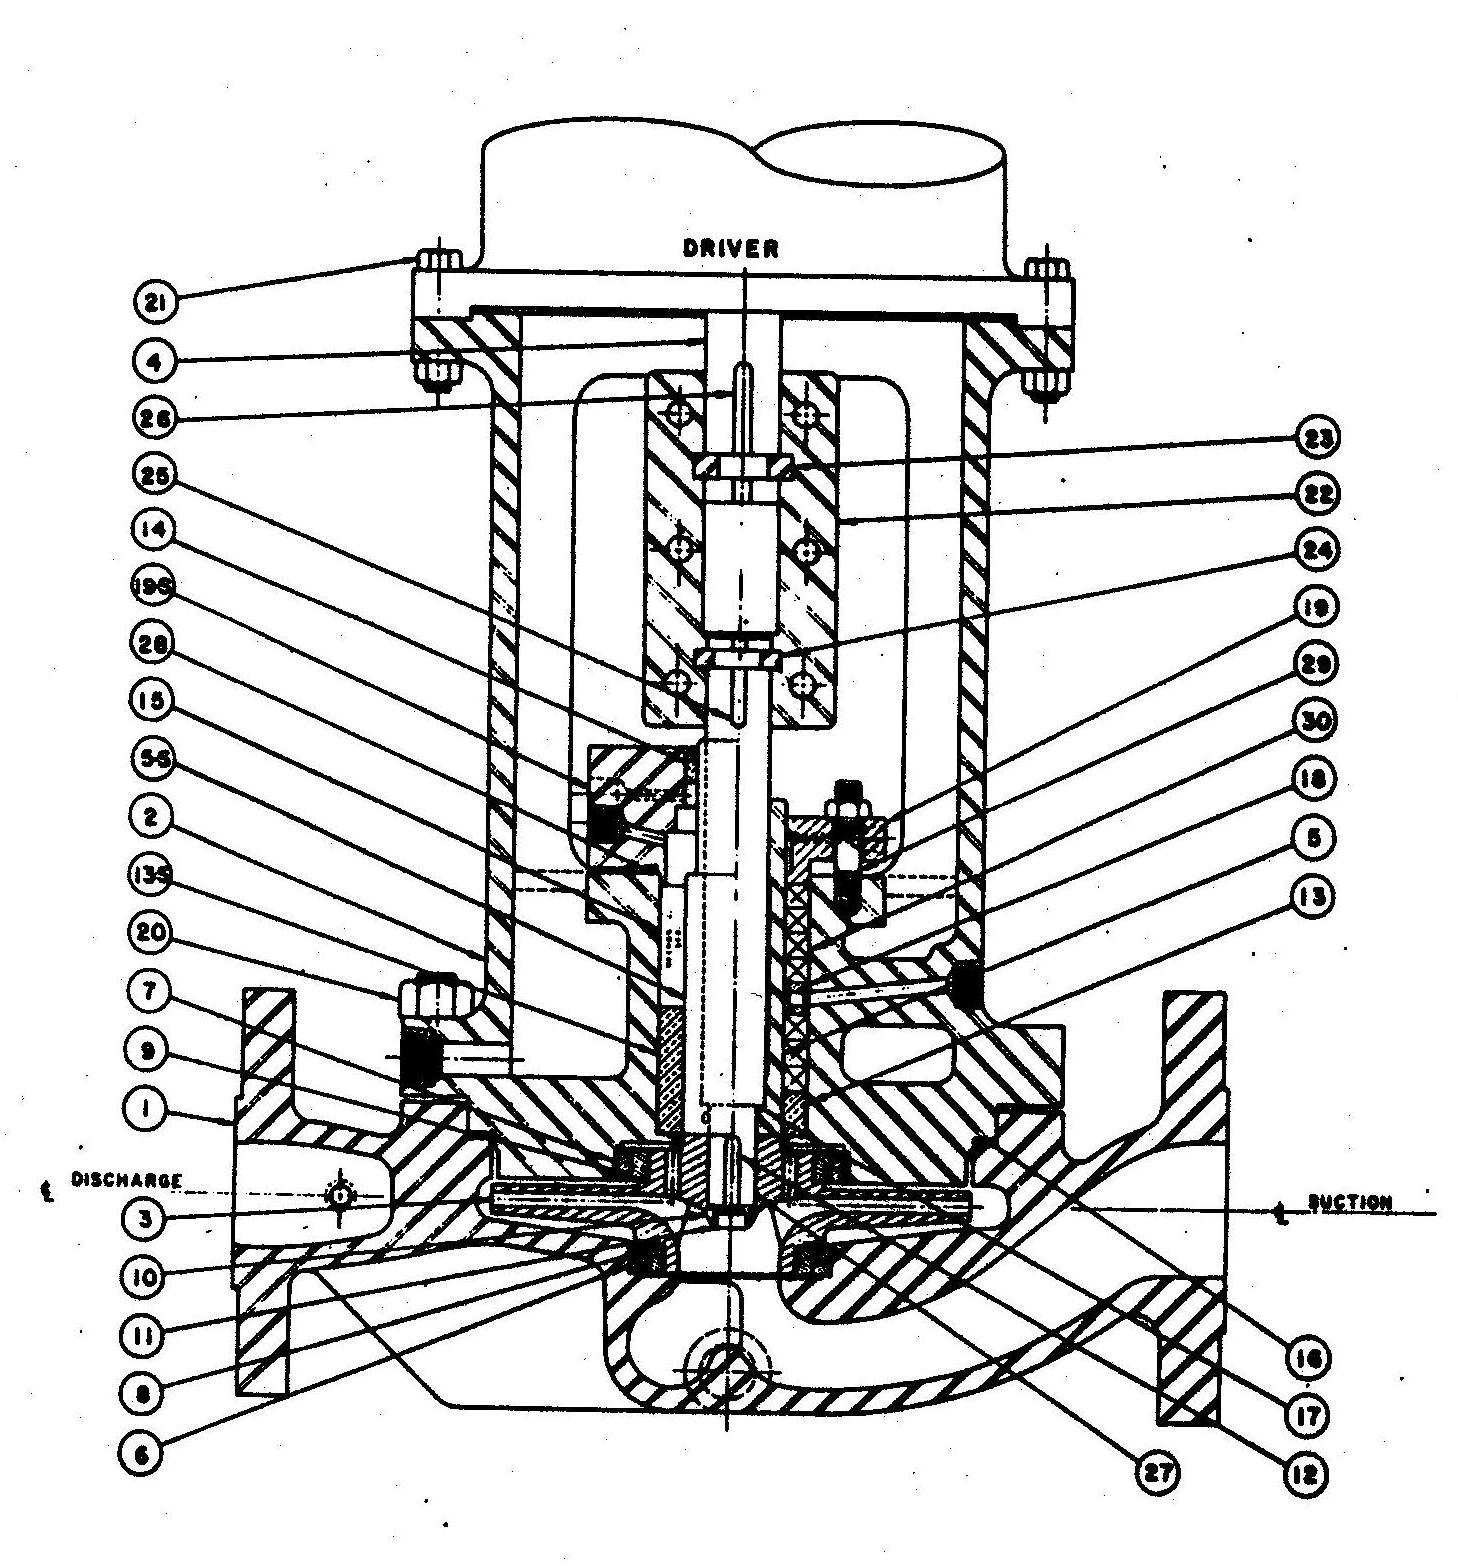 Centrifugal pump axial thrust fire engine diagram vertical turbine pump fisher multistage centrifugal pump diagram on vertical centrifugal pump diagram